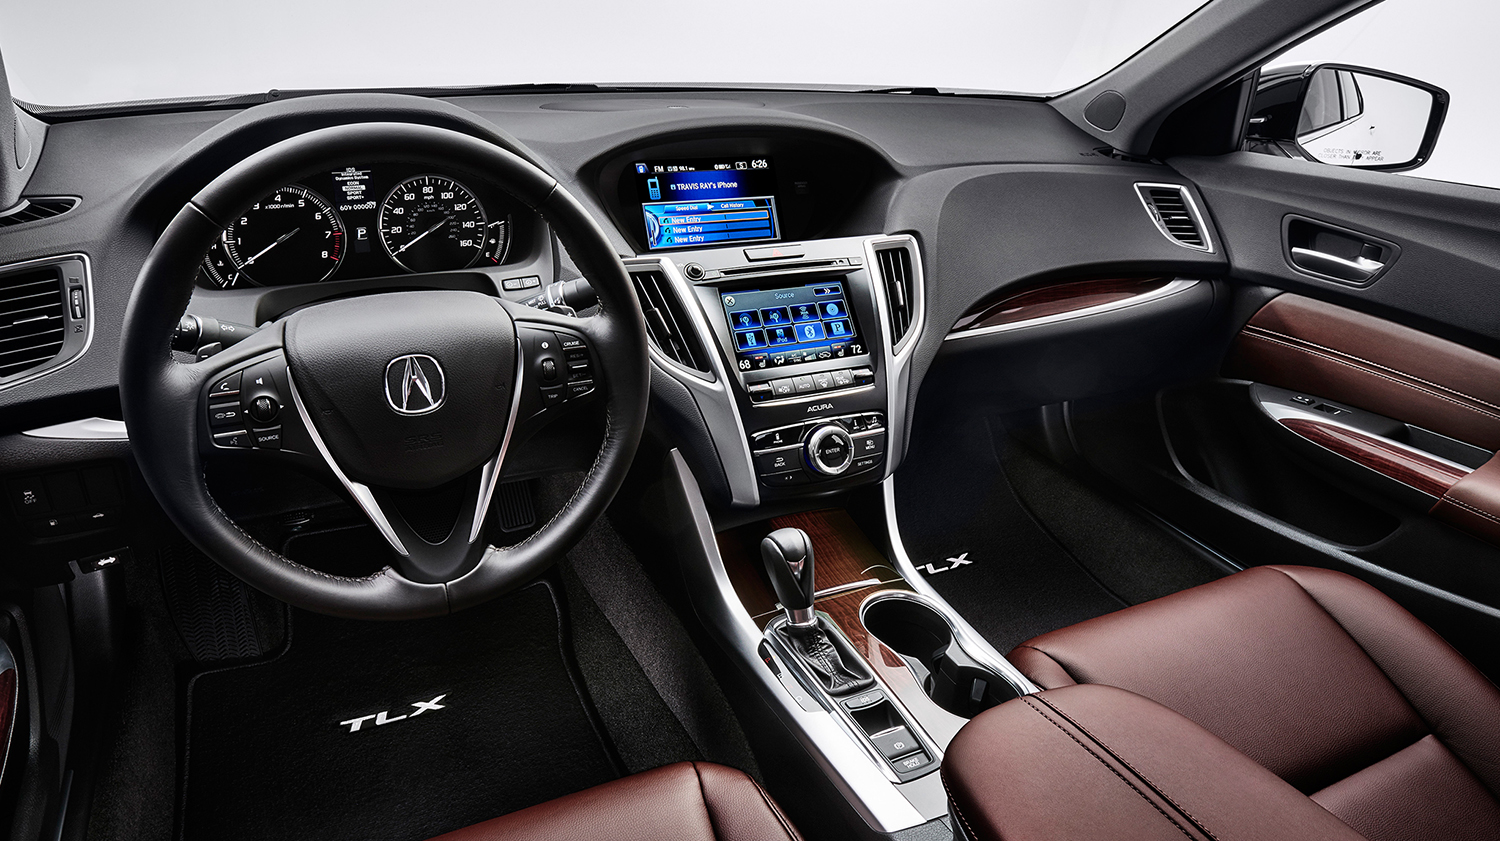 2017 Acura TLX | Central Texas Acura Dealers